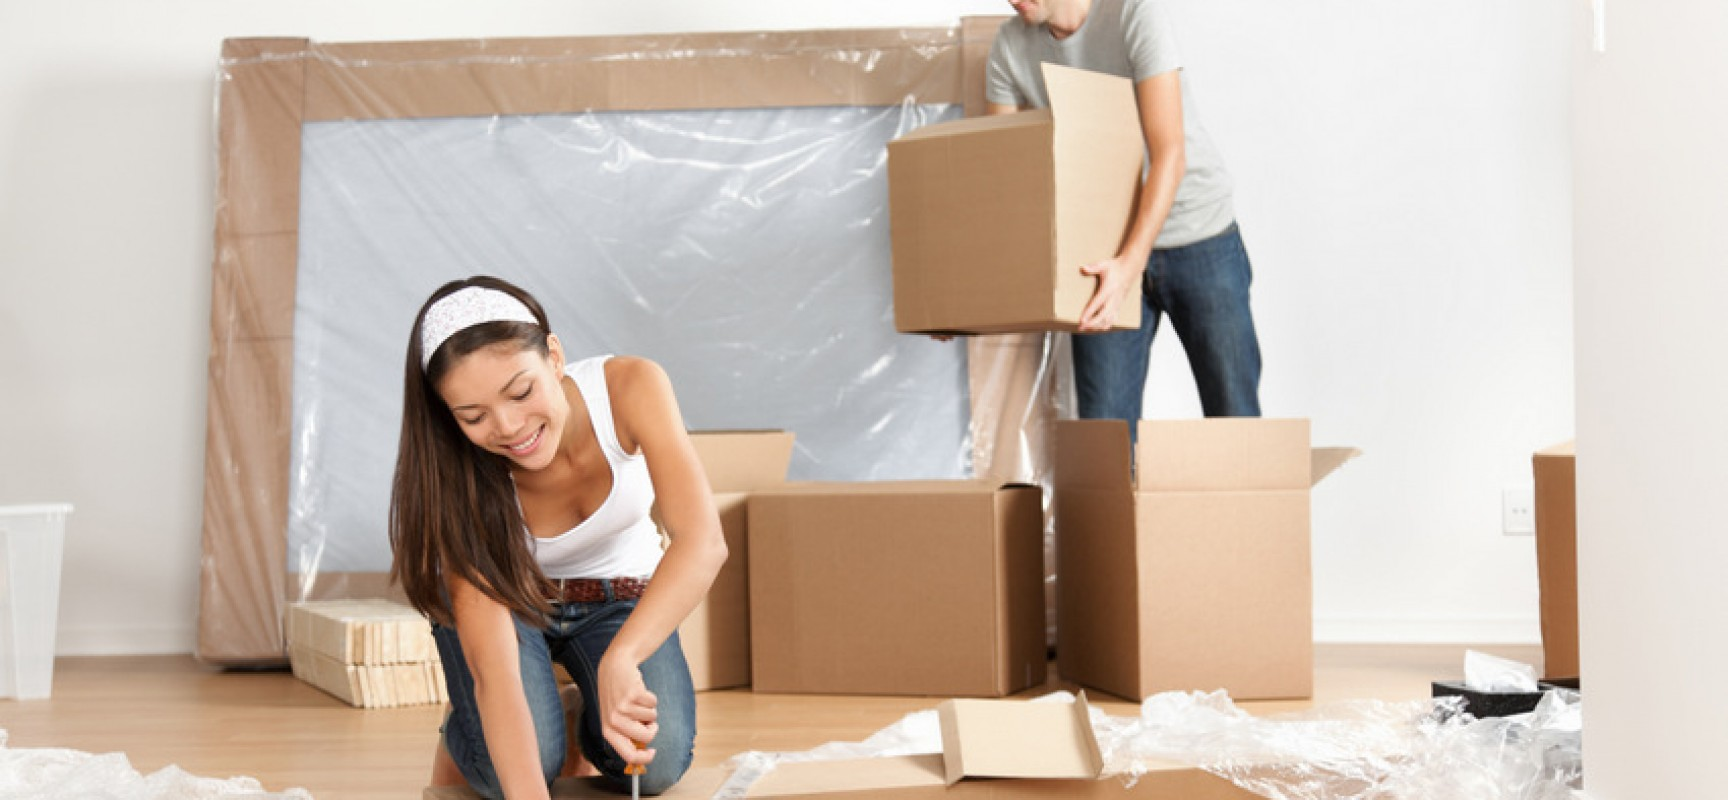 6 Things You Must Do When Moving to a New House